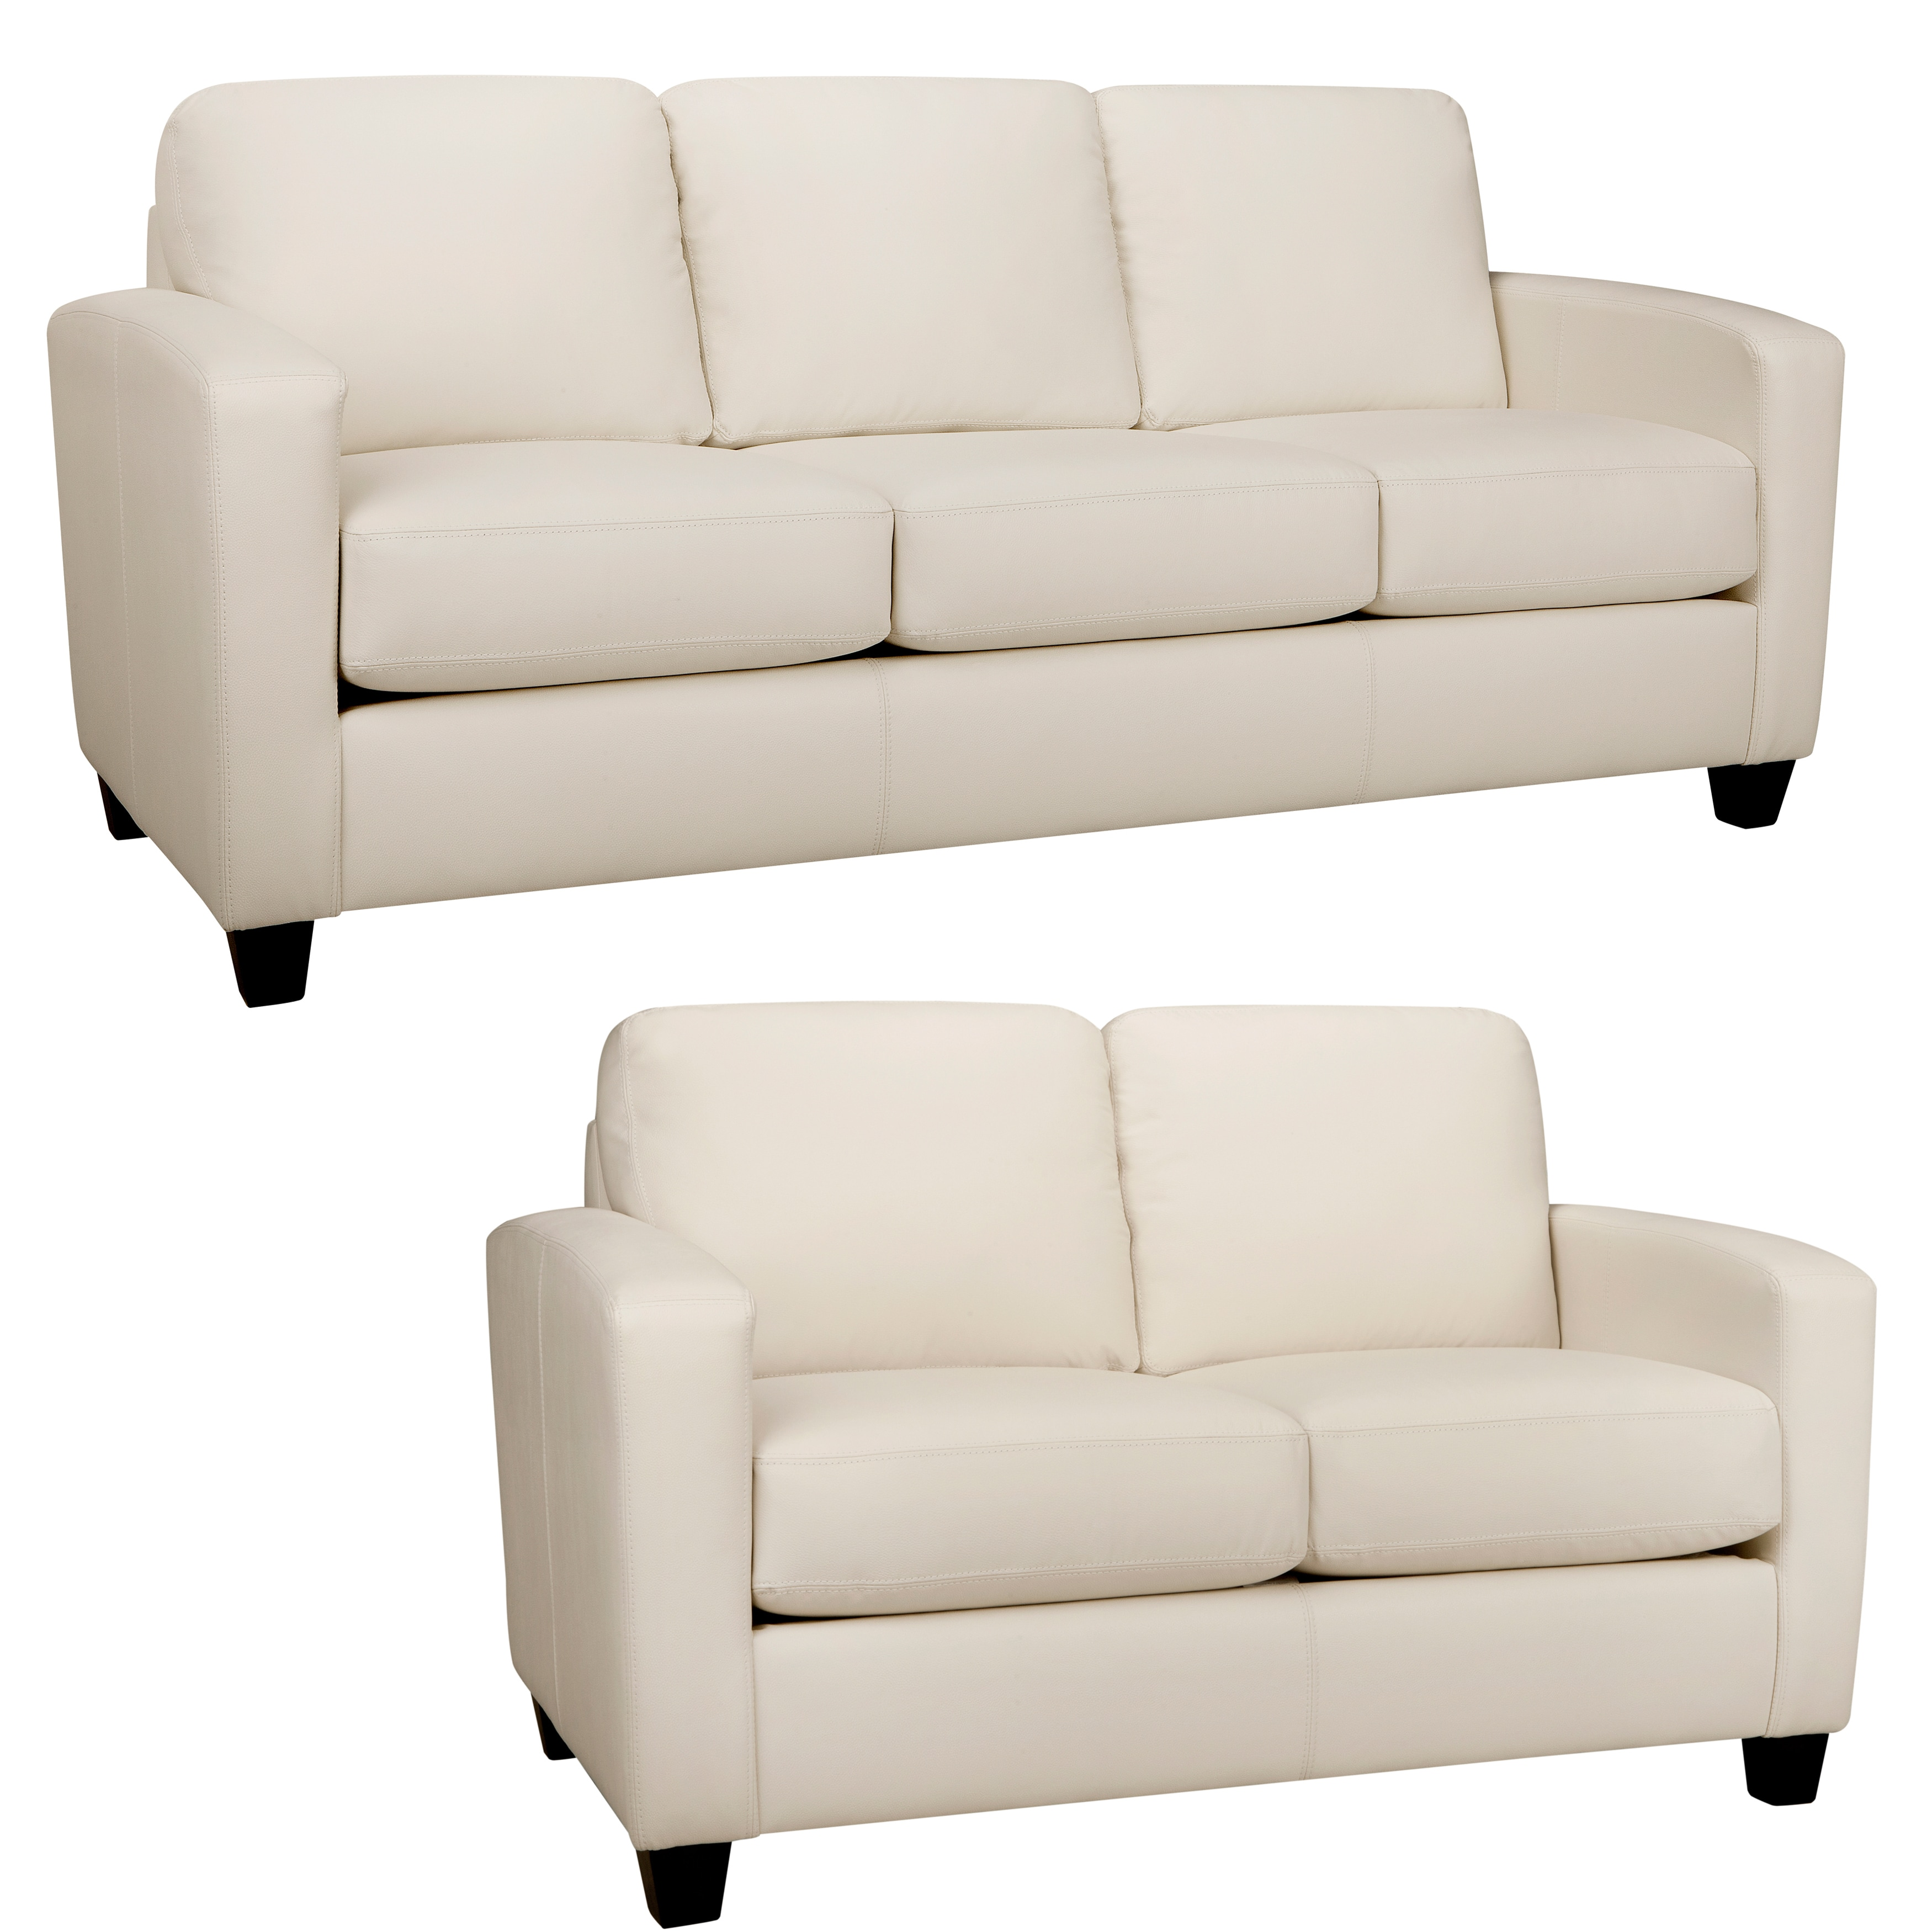 Bryce White Italian Leather Sofa And Loveseat On Free Shipping Today 8533426